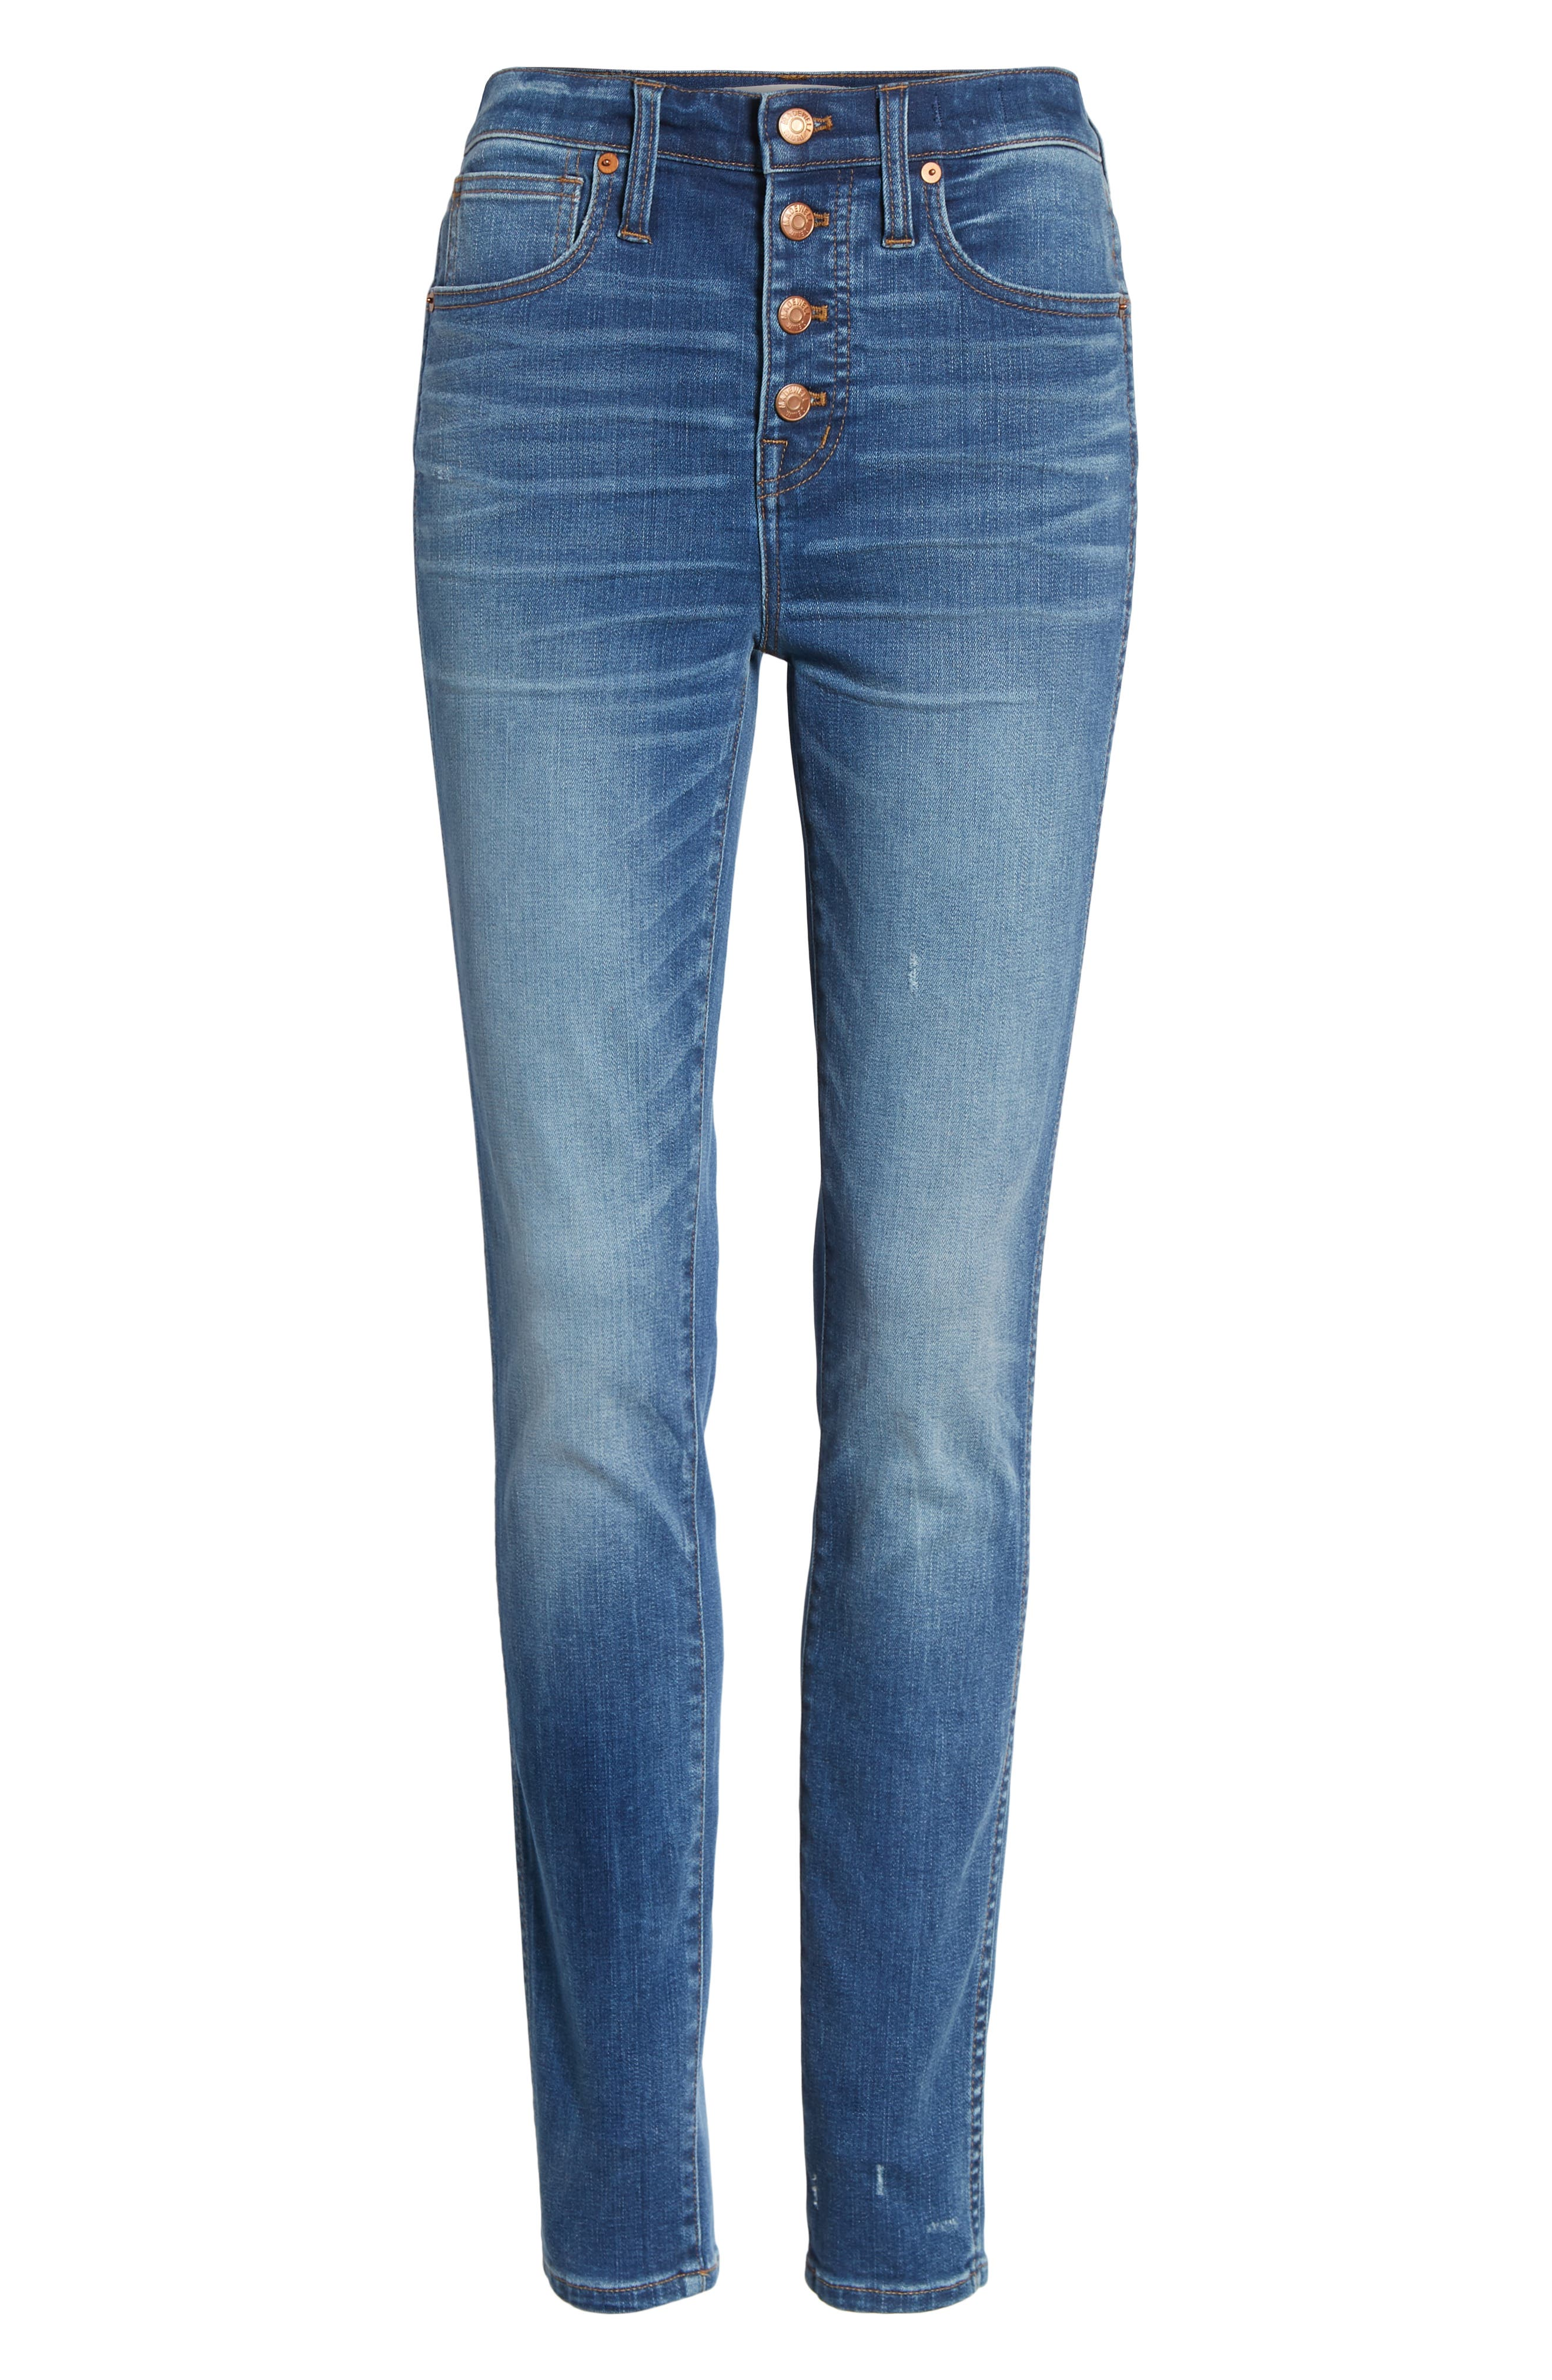 10-Inch High Waist Skinny Jeans,                             Alternate thumbnail 7, color,                             400